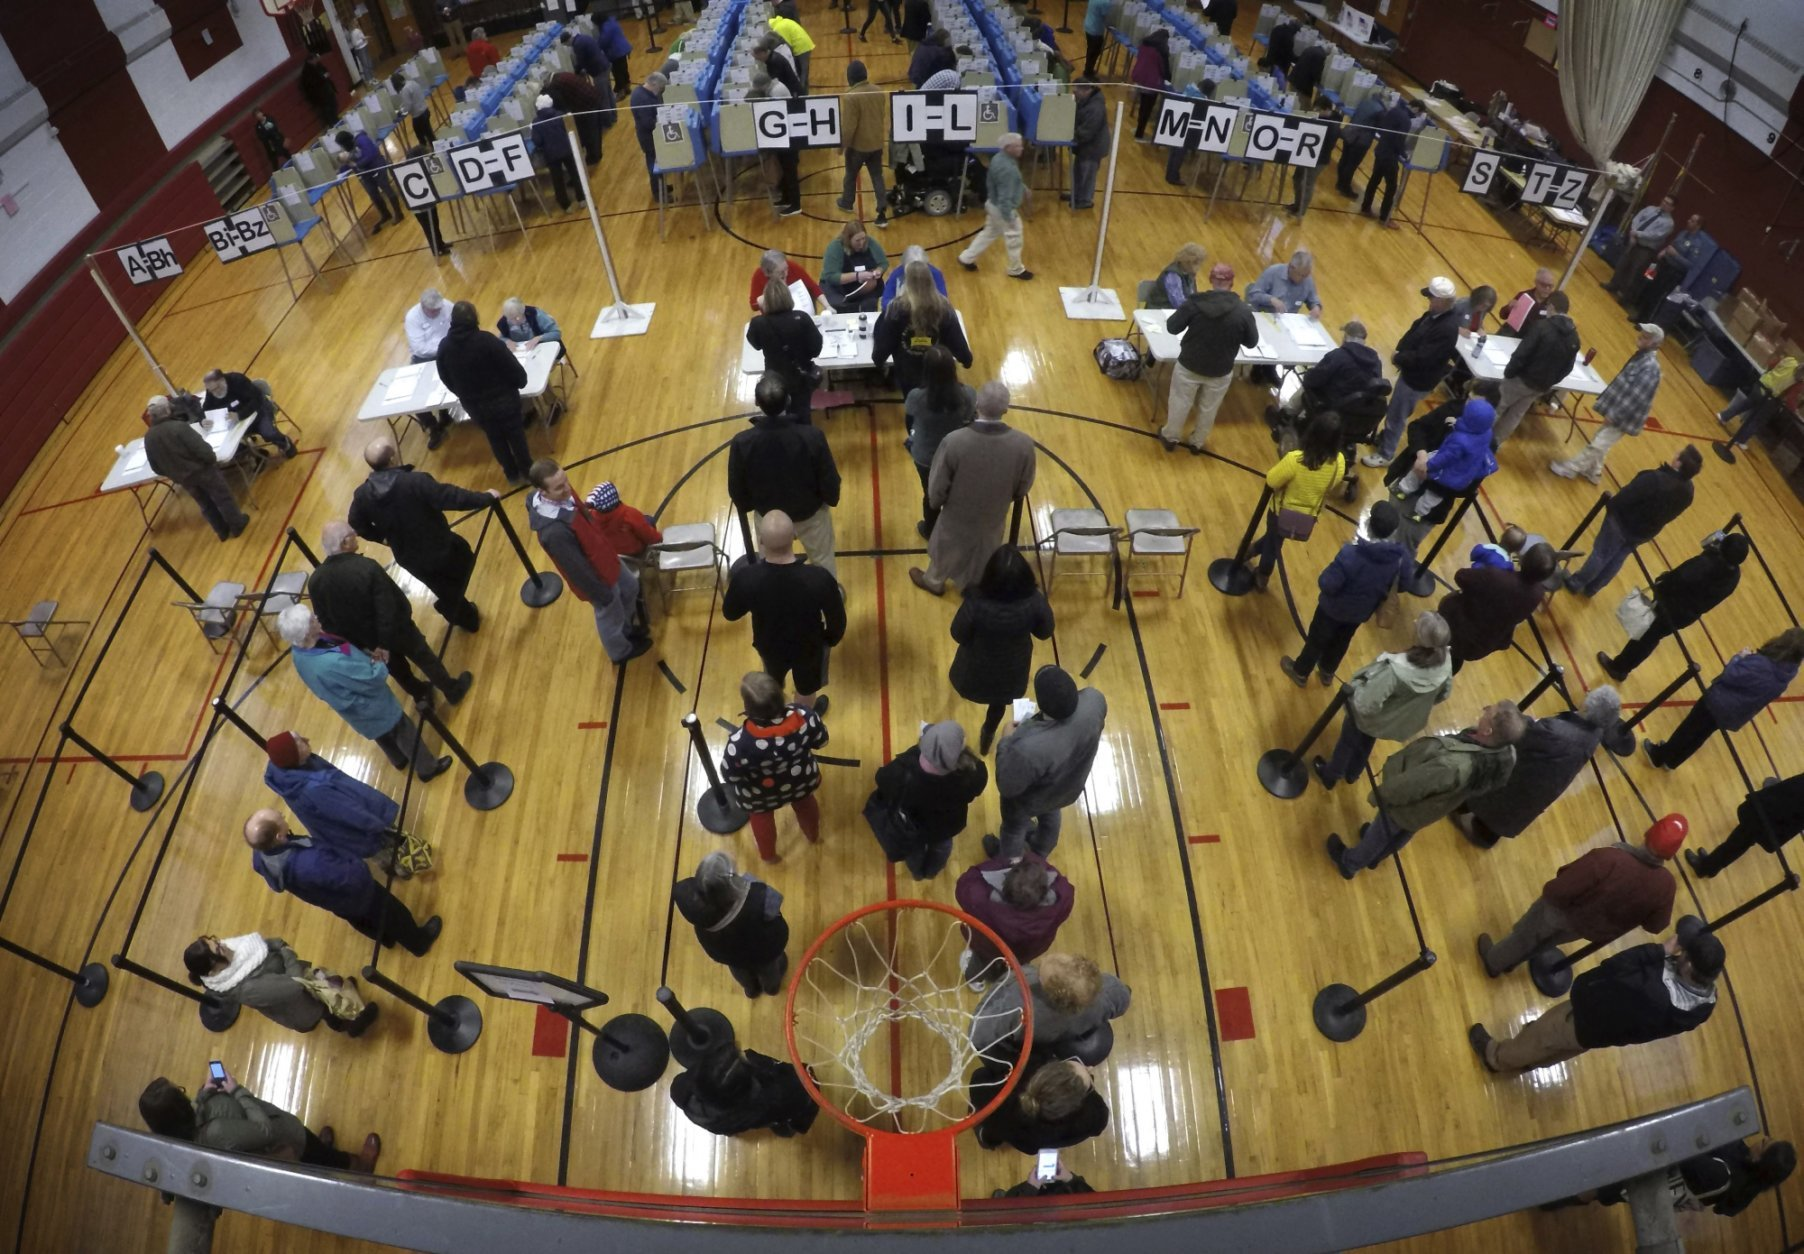 FILE - In this Tuesday, Nov. 6, 2018 file photo, voters wait in line in the gymnasium at Brunswick Junior High School to cast their ballots for the mid-term election in Brunswick, Maine. With Donald Trump on the minds of many voters, Democrats managed to flip about 40 seats in the House of Representatives to seize control of that chamber from Republicans. Democrats also flipped several governorships around the country. But the GOP boosted its slim majority in the Senate and will have a 53-47 edge in the next session of Congress. (AP Photo/Robert F. Bukaty)